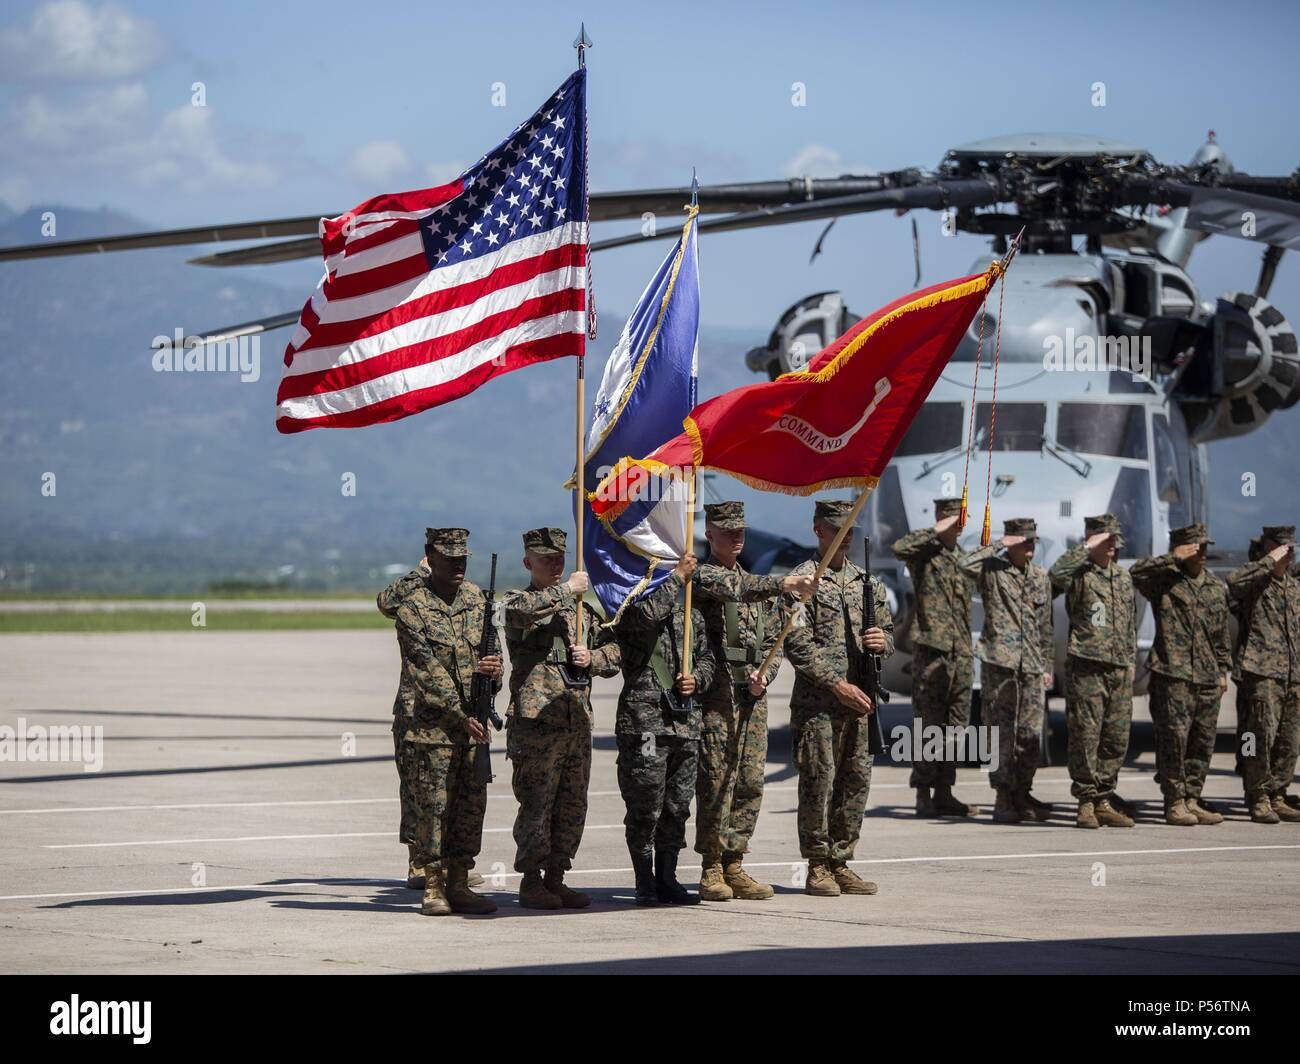 A multinational color guard comprised of Marines with Special Purpose Marine Air-Ground Task Force - Southern Command and a Honduran Army soldier present colors during an opening ceremony on Soto Cano Air Base, Honduras, to mark the beginning of SPMAGTF-SC deployment to Latin America and the Caribbean, June 11, 2018, June 11, 2018. The Marines and sailors of SPMAGTF-SC will conduct security cooperation training and engineering projects alongside partner nation military forces in Central and South America during their deployment. The unit is also on standby to provide humanitarian assistance an - Stock Image